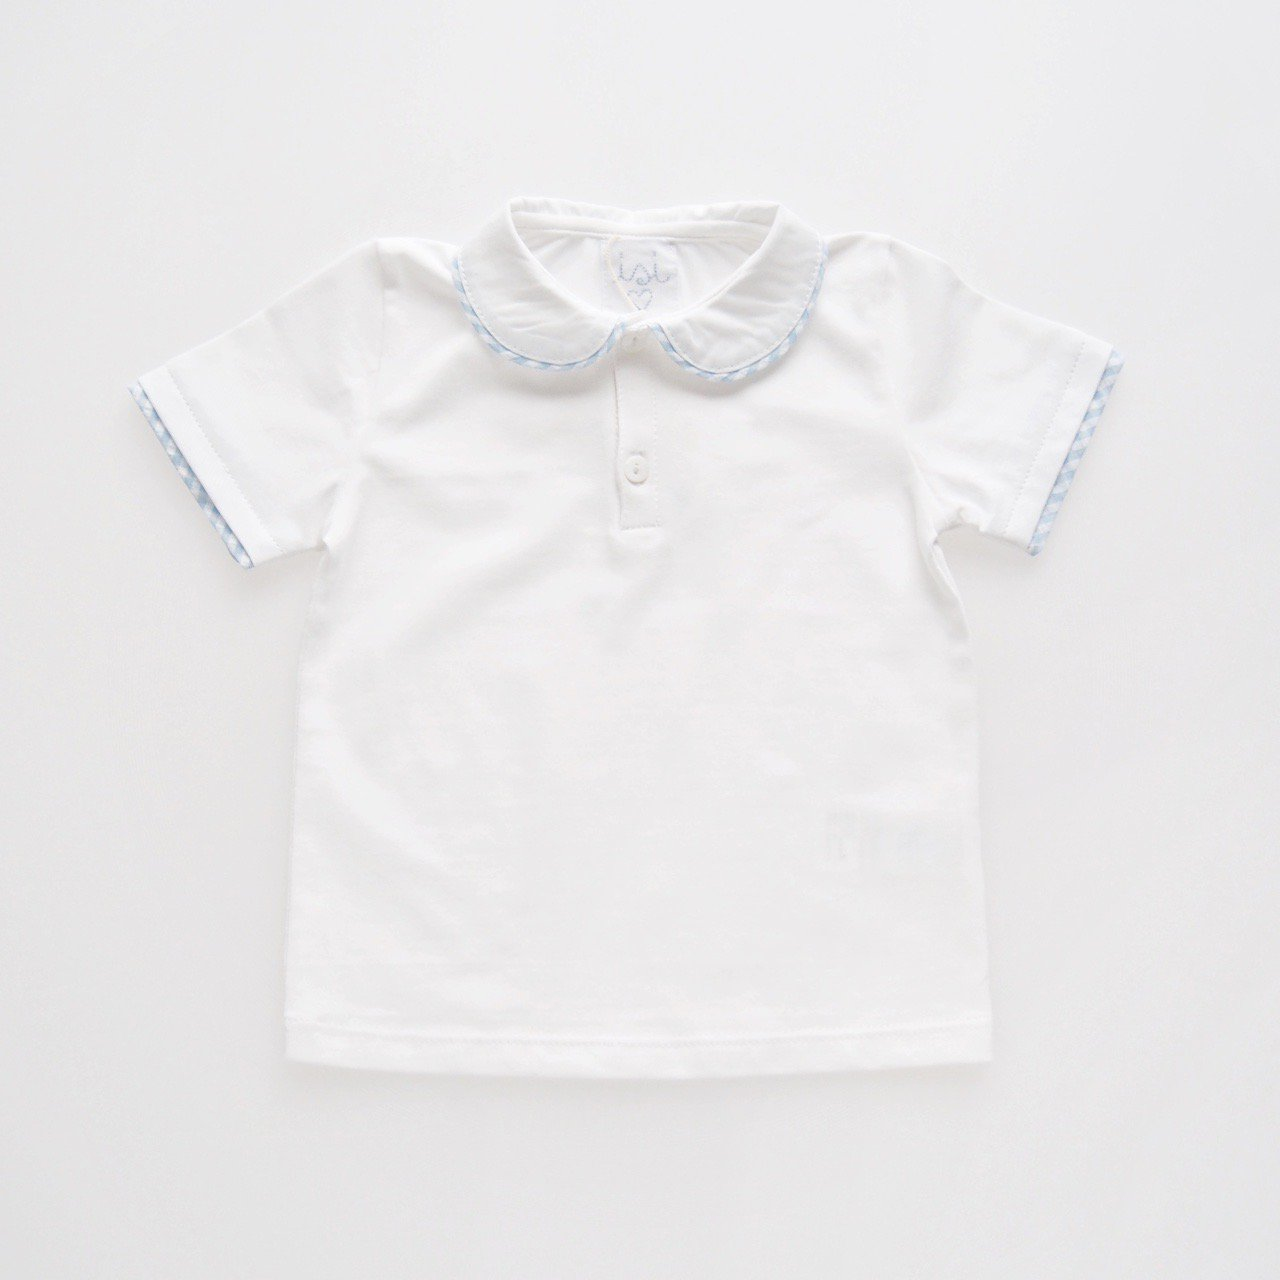 <img class='new_mark_img1' src='https://img.shop-pro.jp/img/new/icons14.gif' style='border:none;display:inline;margin:0px;padding:0px;width:auto;' />Malvi&Co. - Trim collar Jersey polo (Pale blue/ Navy)